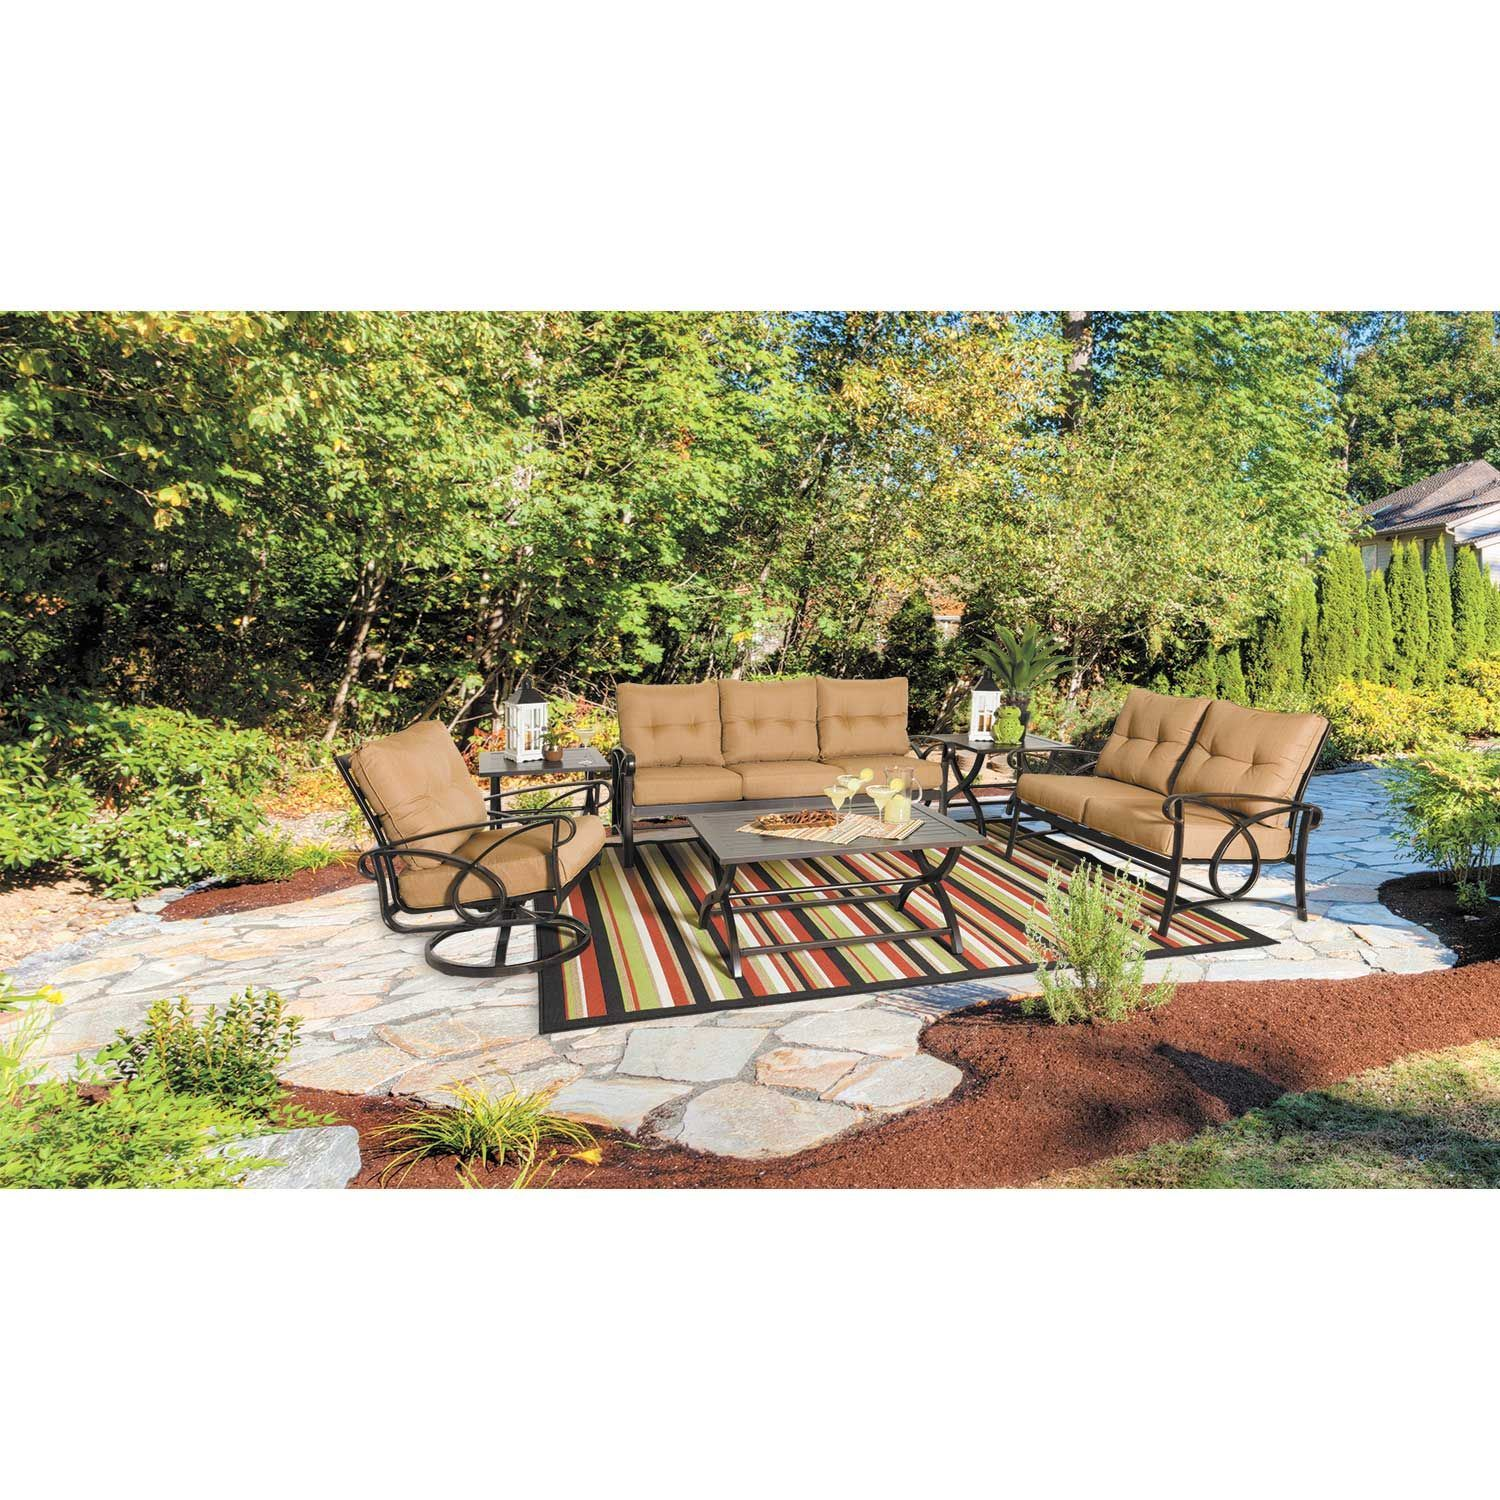 Picture Of Summerset Swivel Rocker Picture Of Summerset Swivel Rocker ...